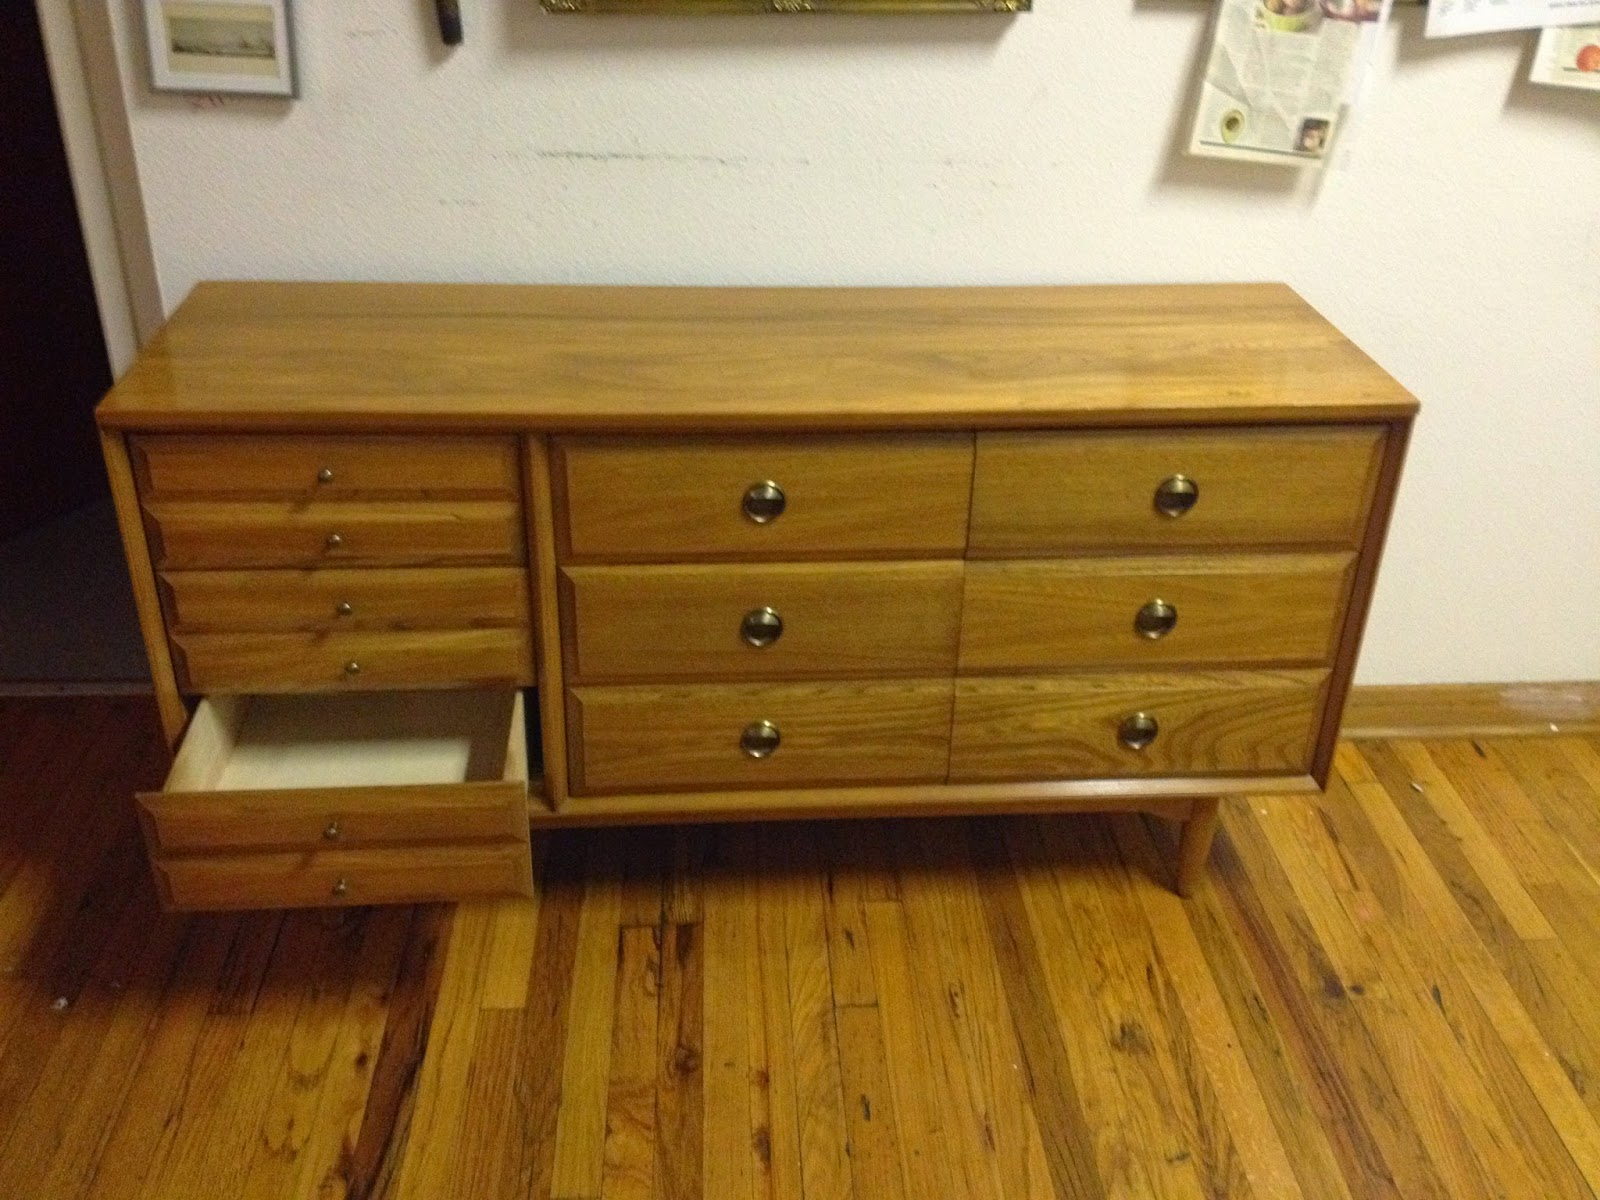 9 Drawer Dresser From The 1960u0027s By L.A. Period Furniture Mfg. Company Made  Of Solid Elm Hardwood. In Excellent Condition. Vintage